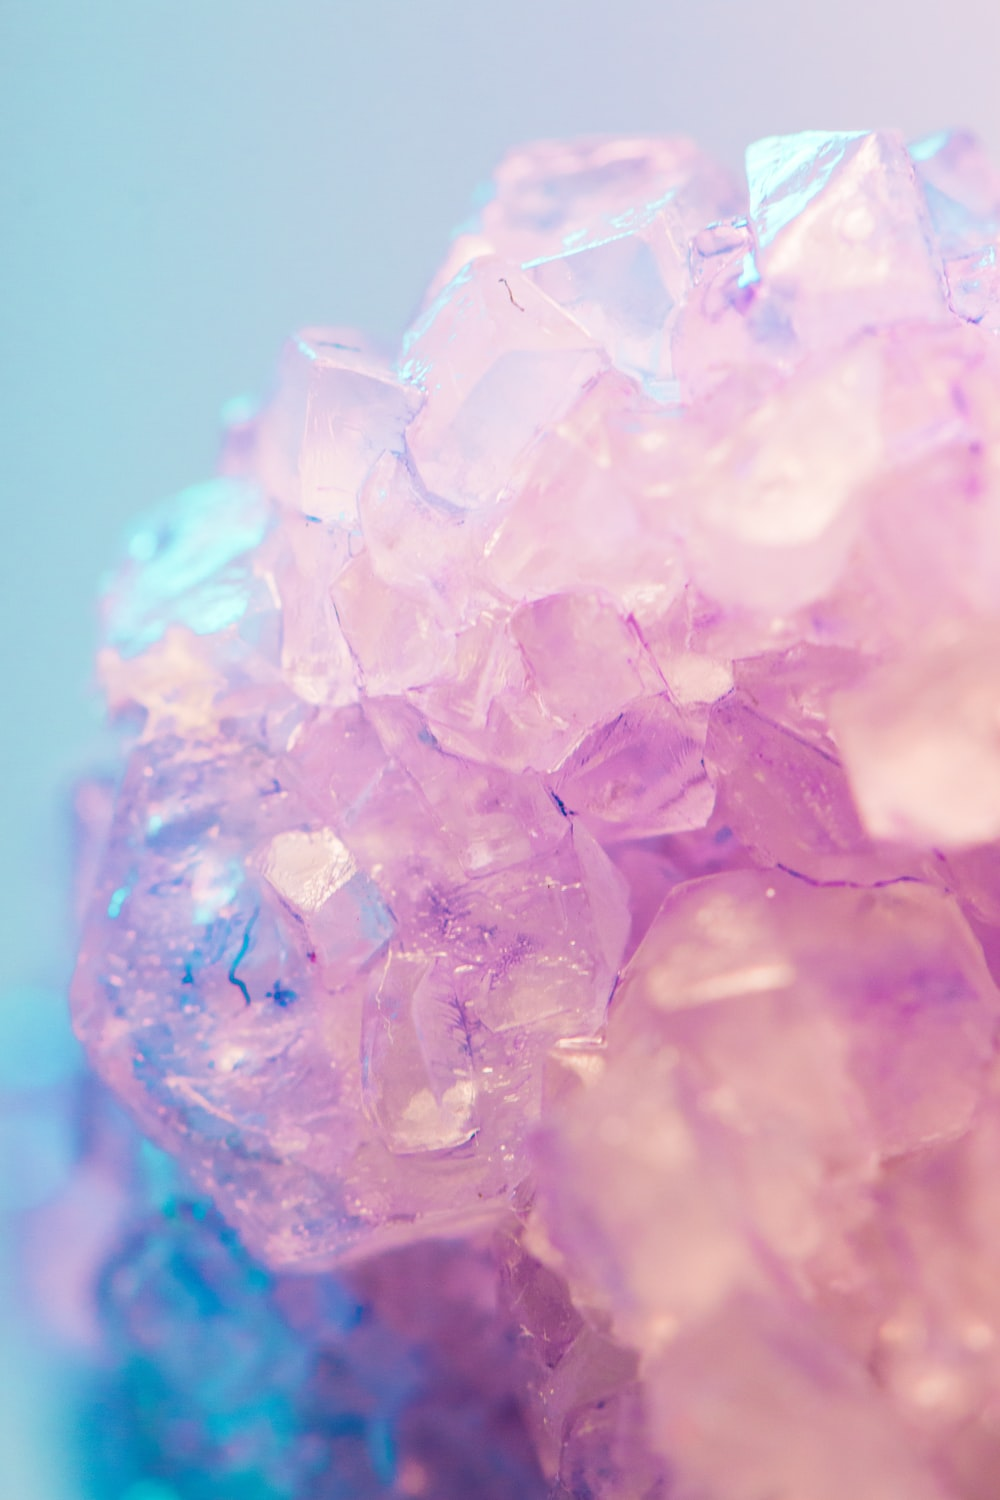 500 crystal pictures hd download free images on unsplash